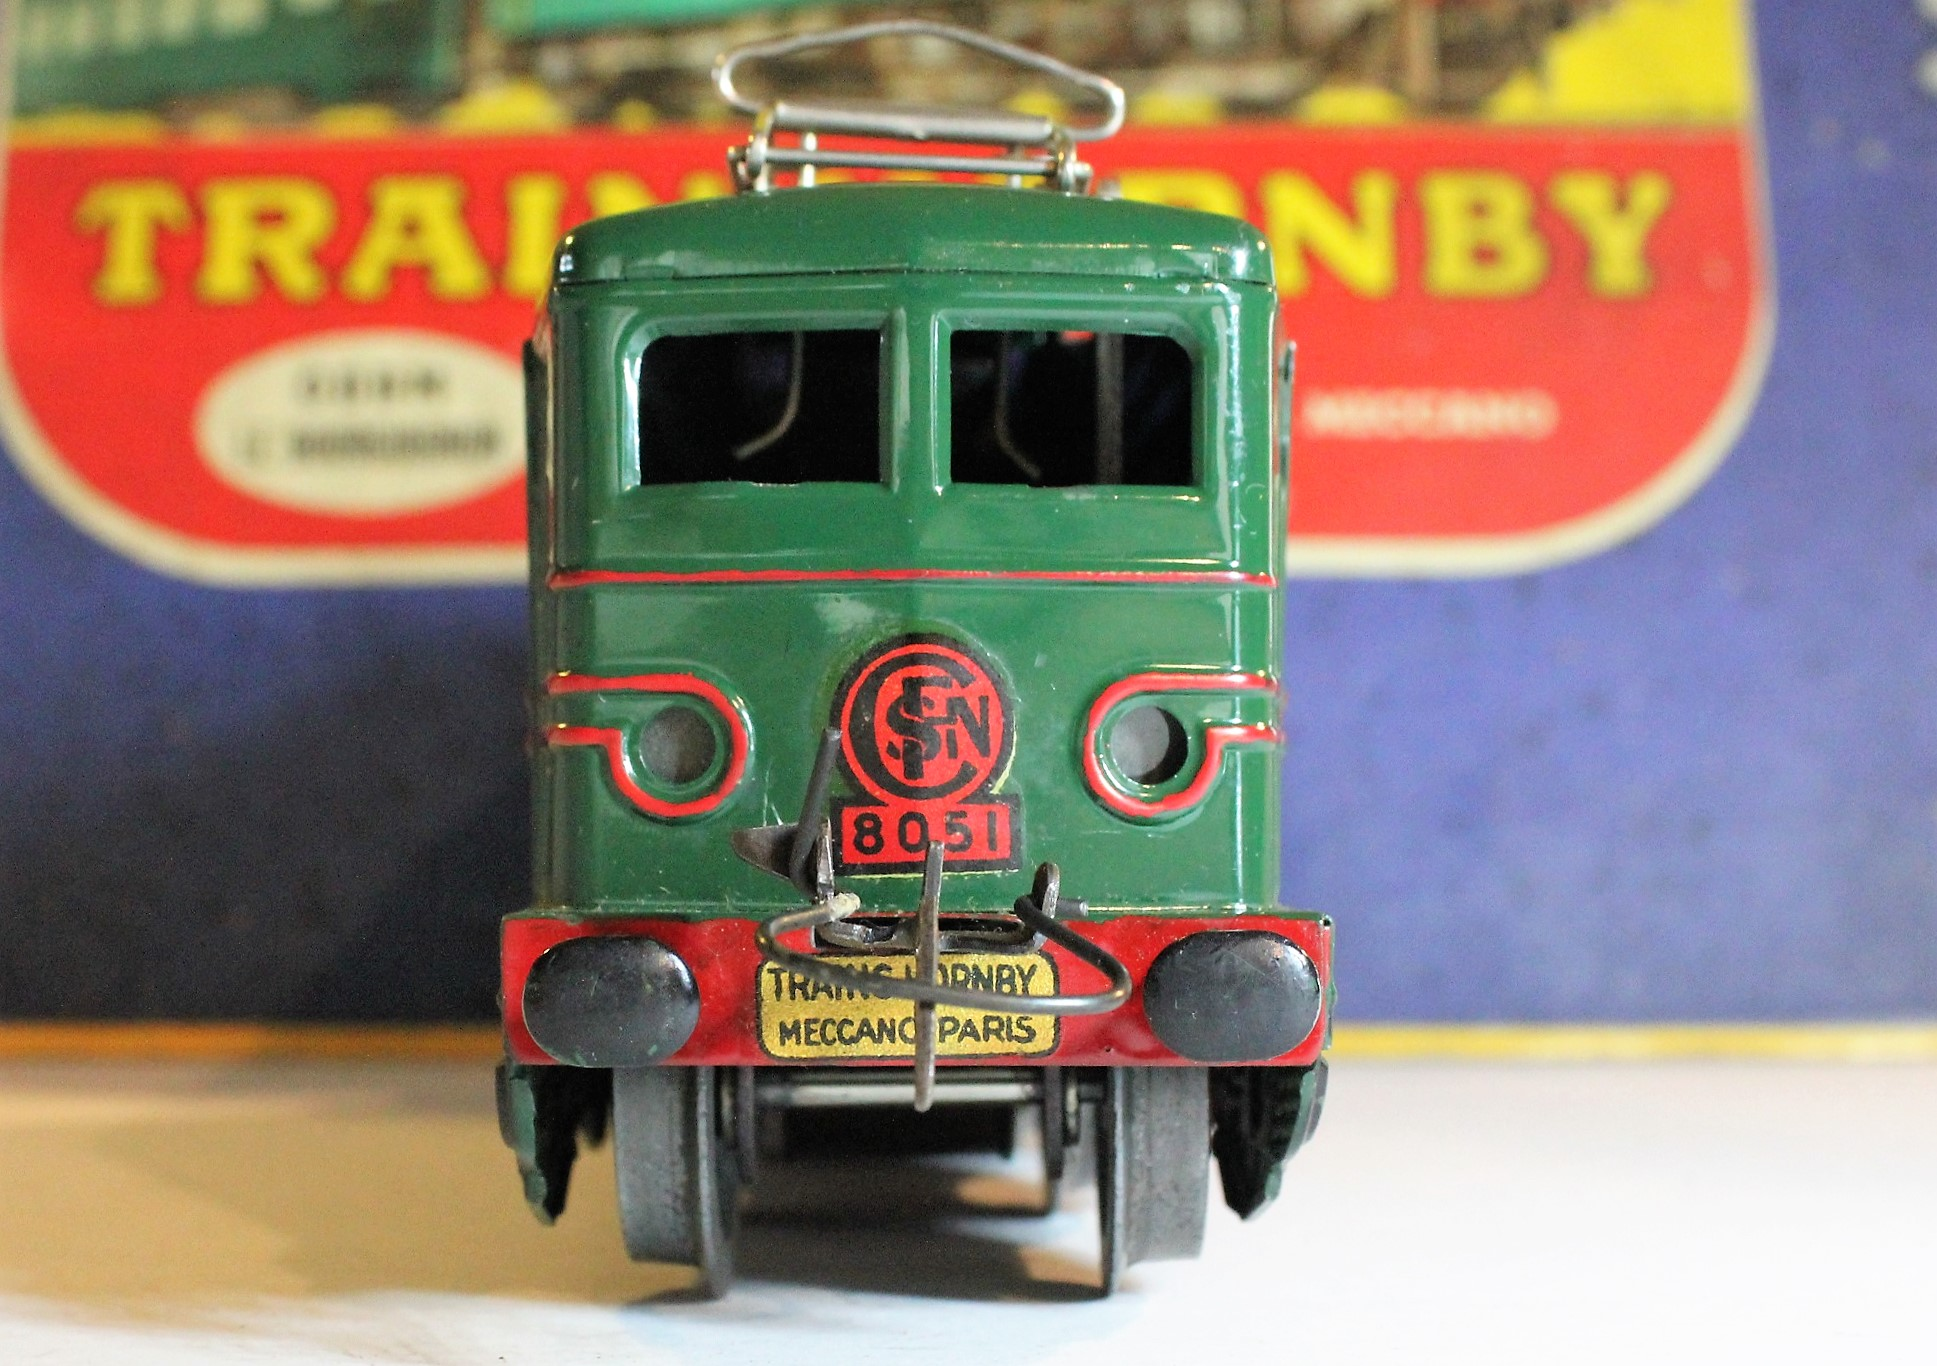 French Hornby OBB Locomotive